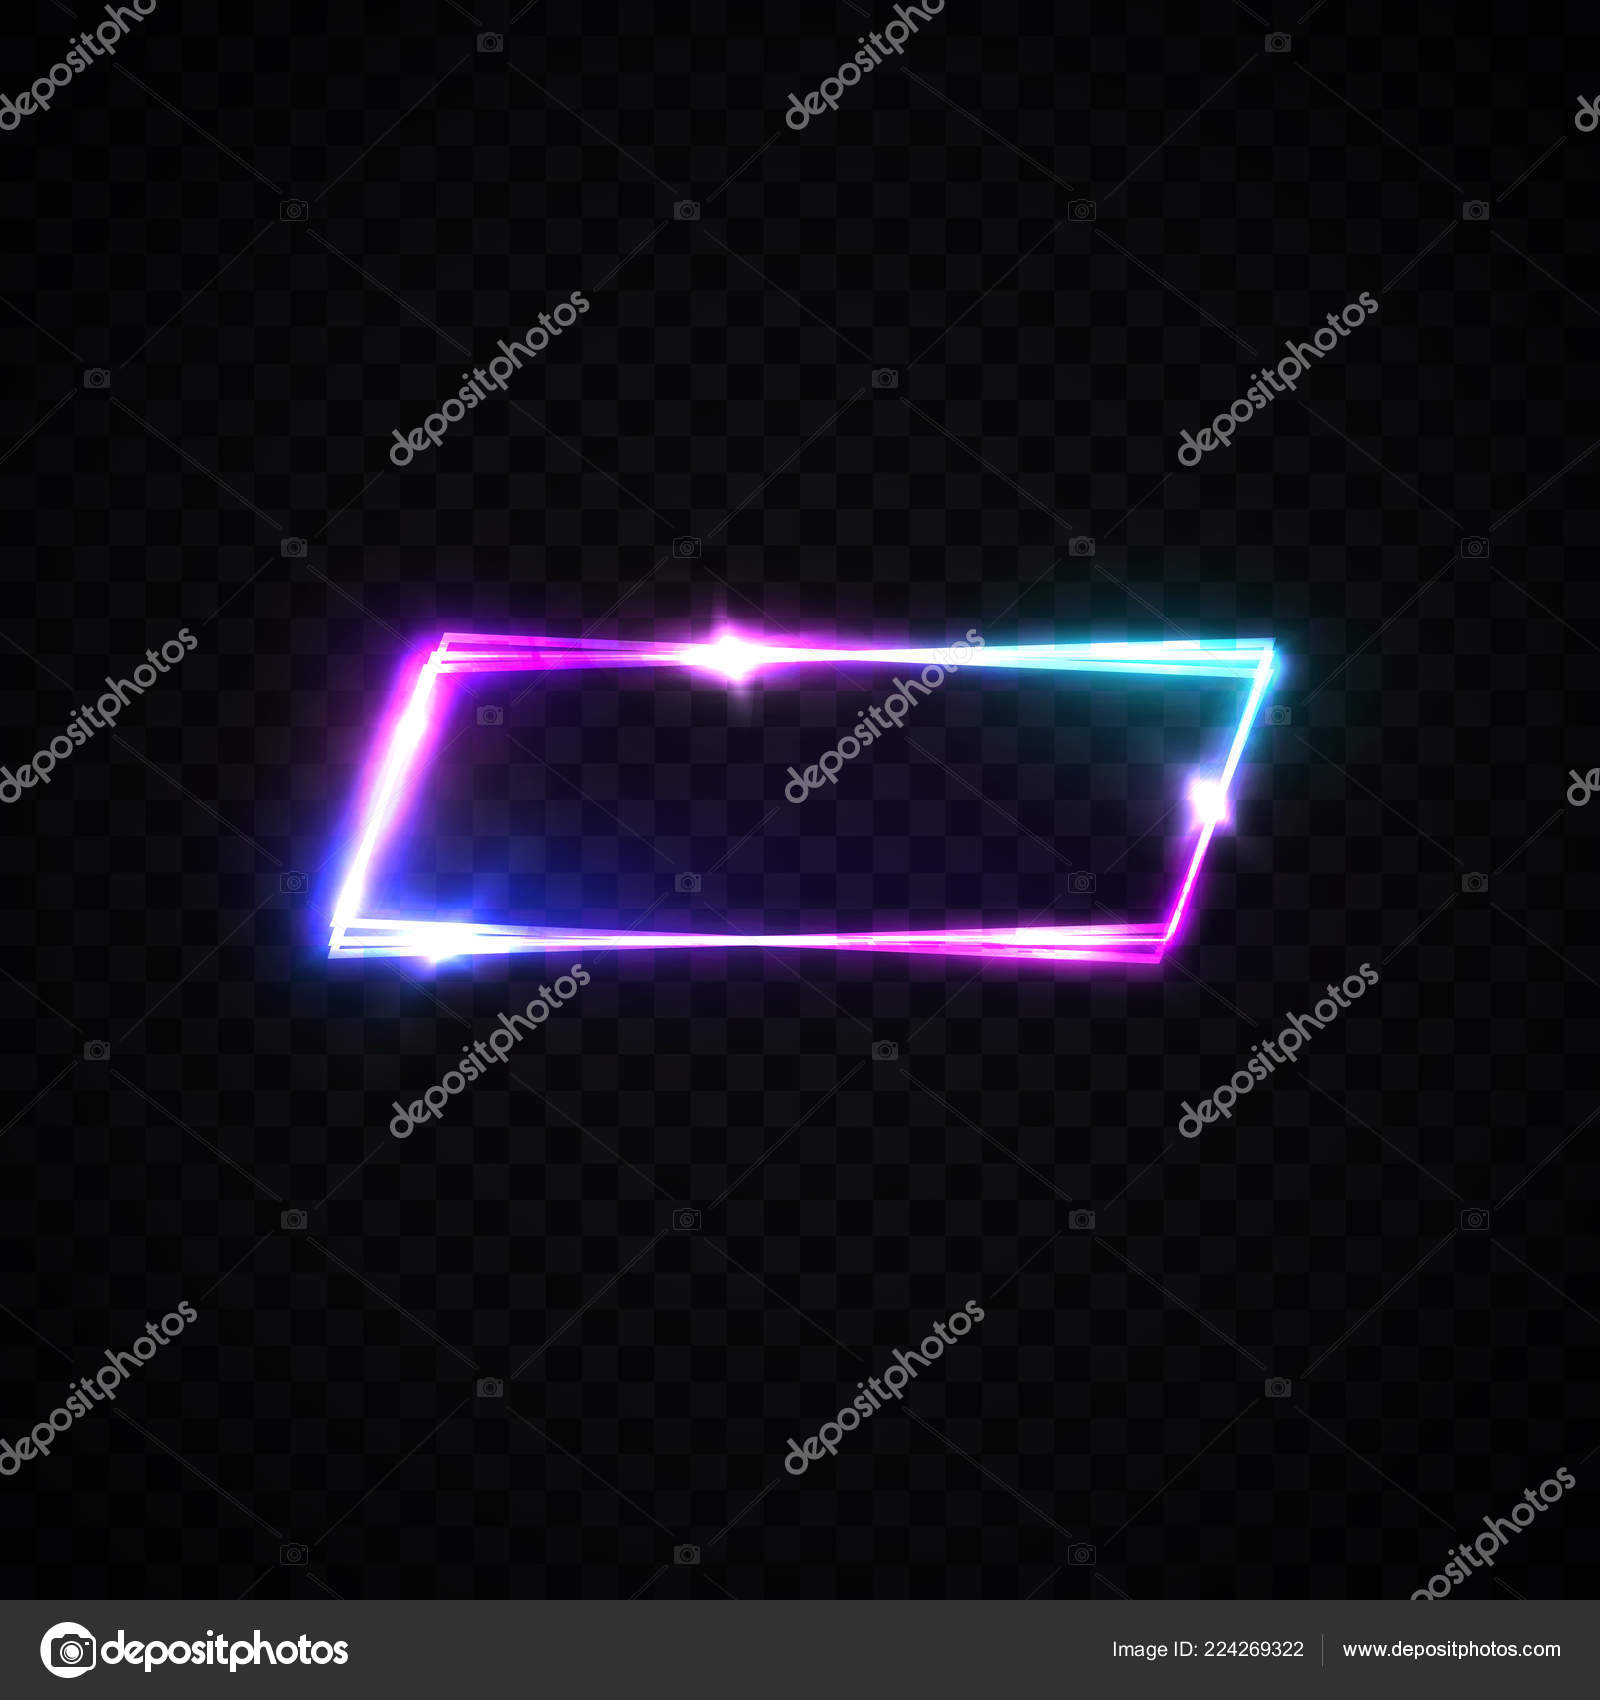 neon sign template on transparent background with blank space for